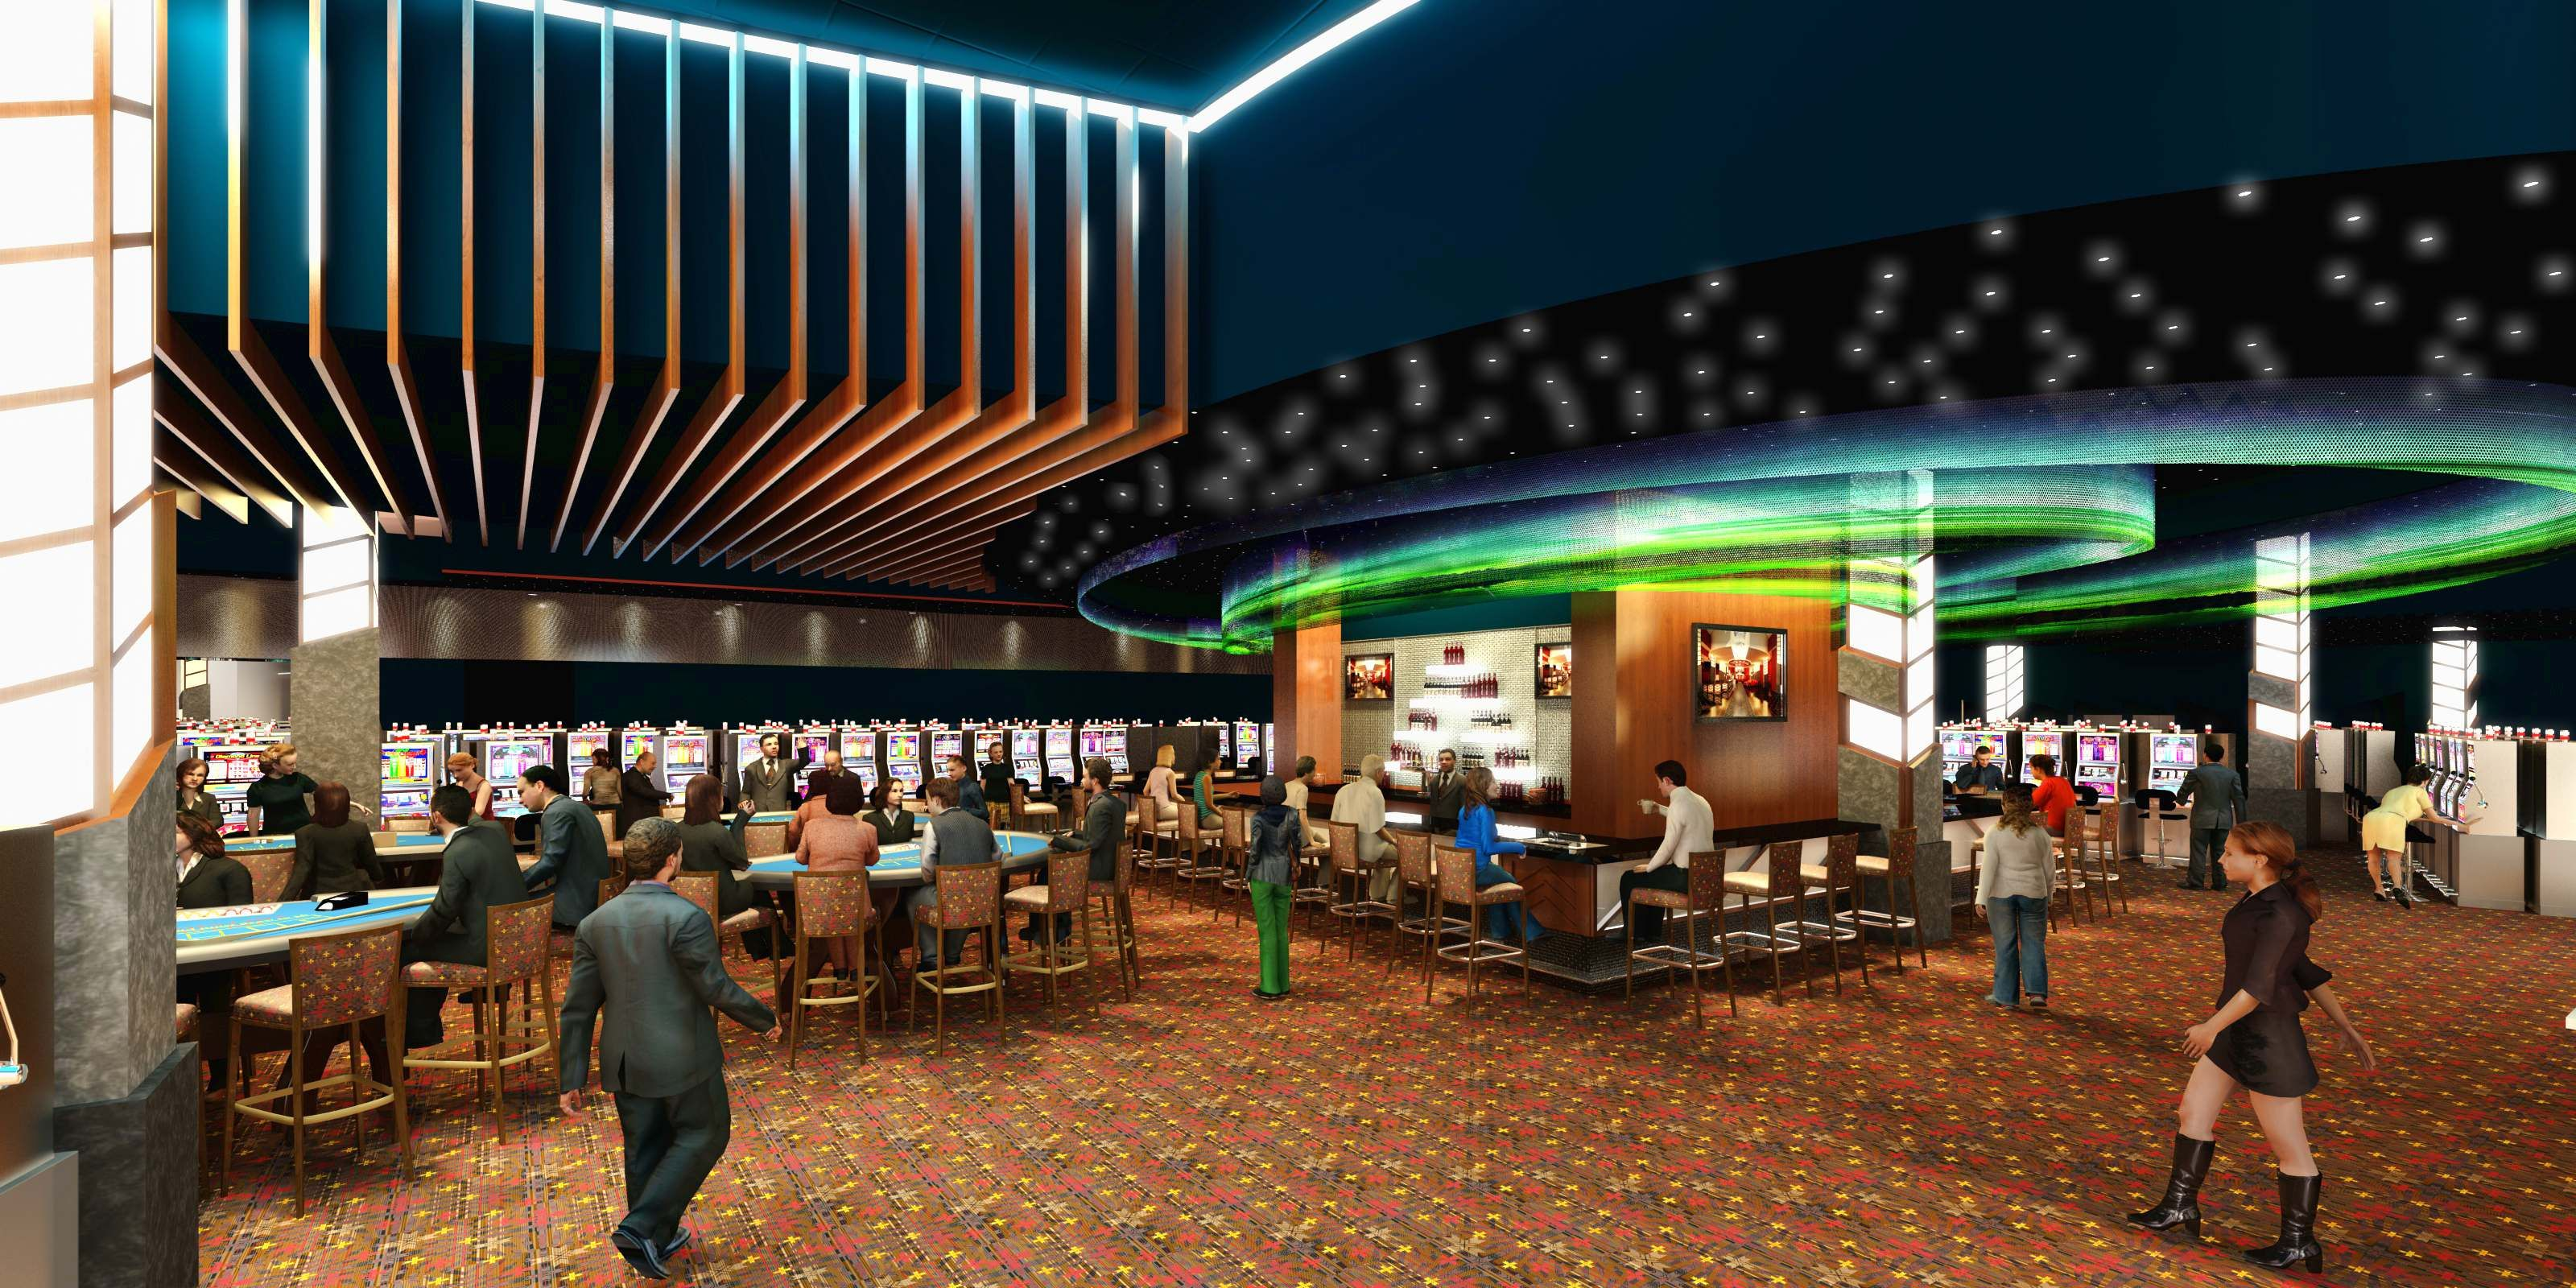 The New Sky Dancer Casino U0026 Hotel Designed By DSGW Architectu0027s First  American Design Studio Headed By Mike Laverdure, Incorporated Elements Of  The Northern ... Idea